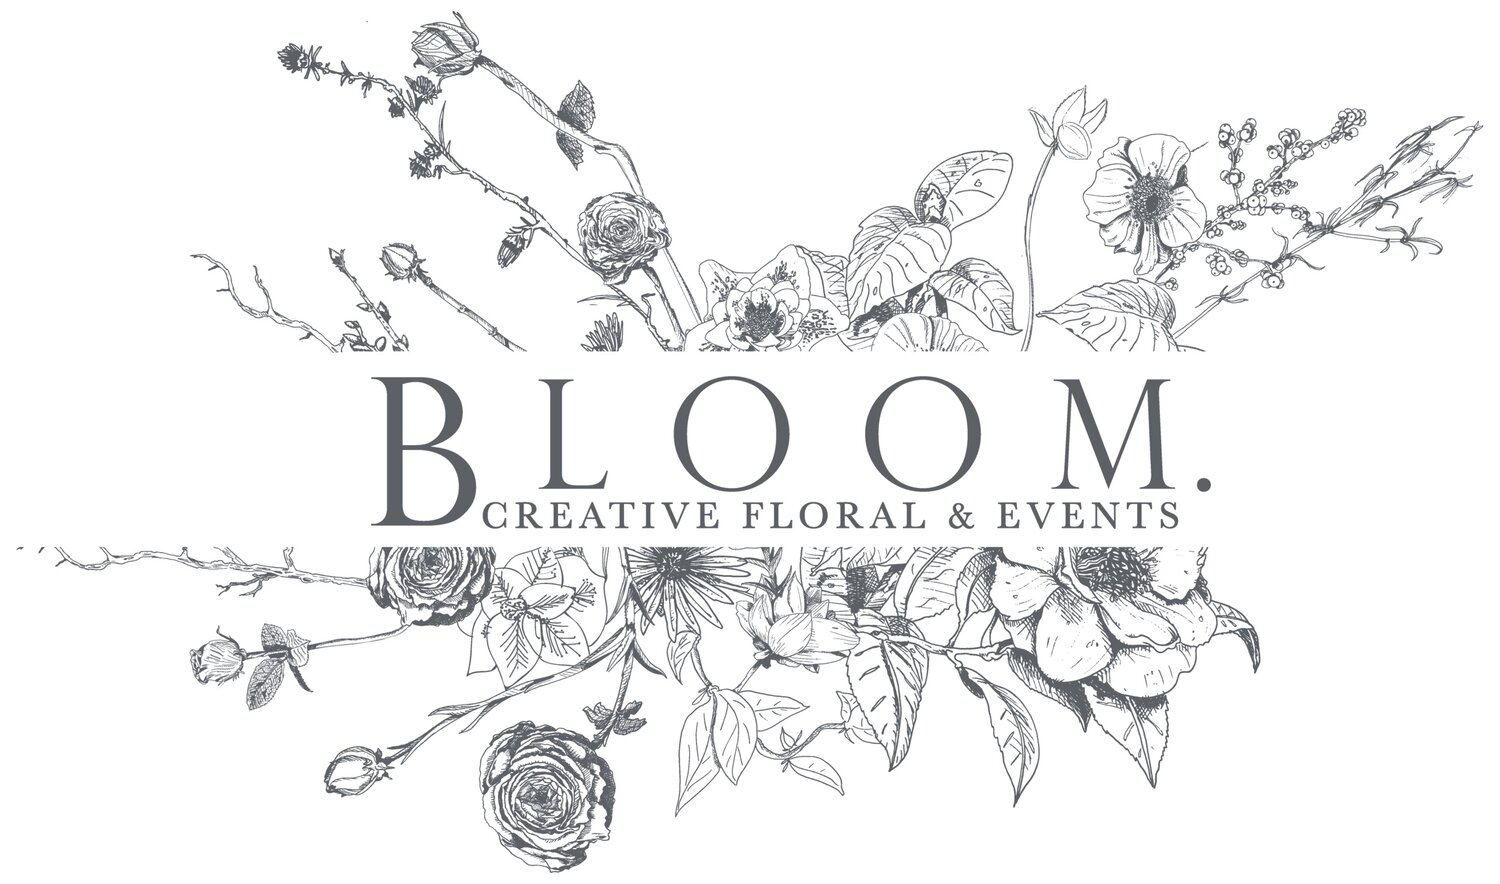 BLOOM. Creative Floral & Events, LLC